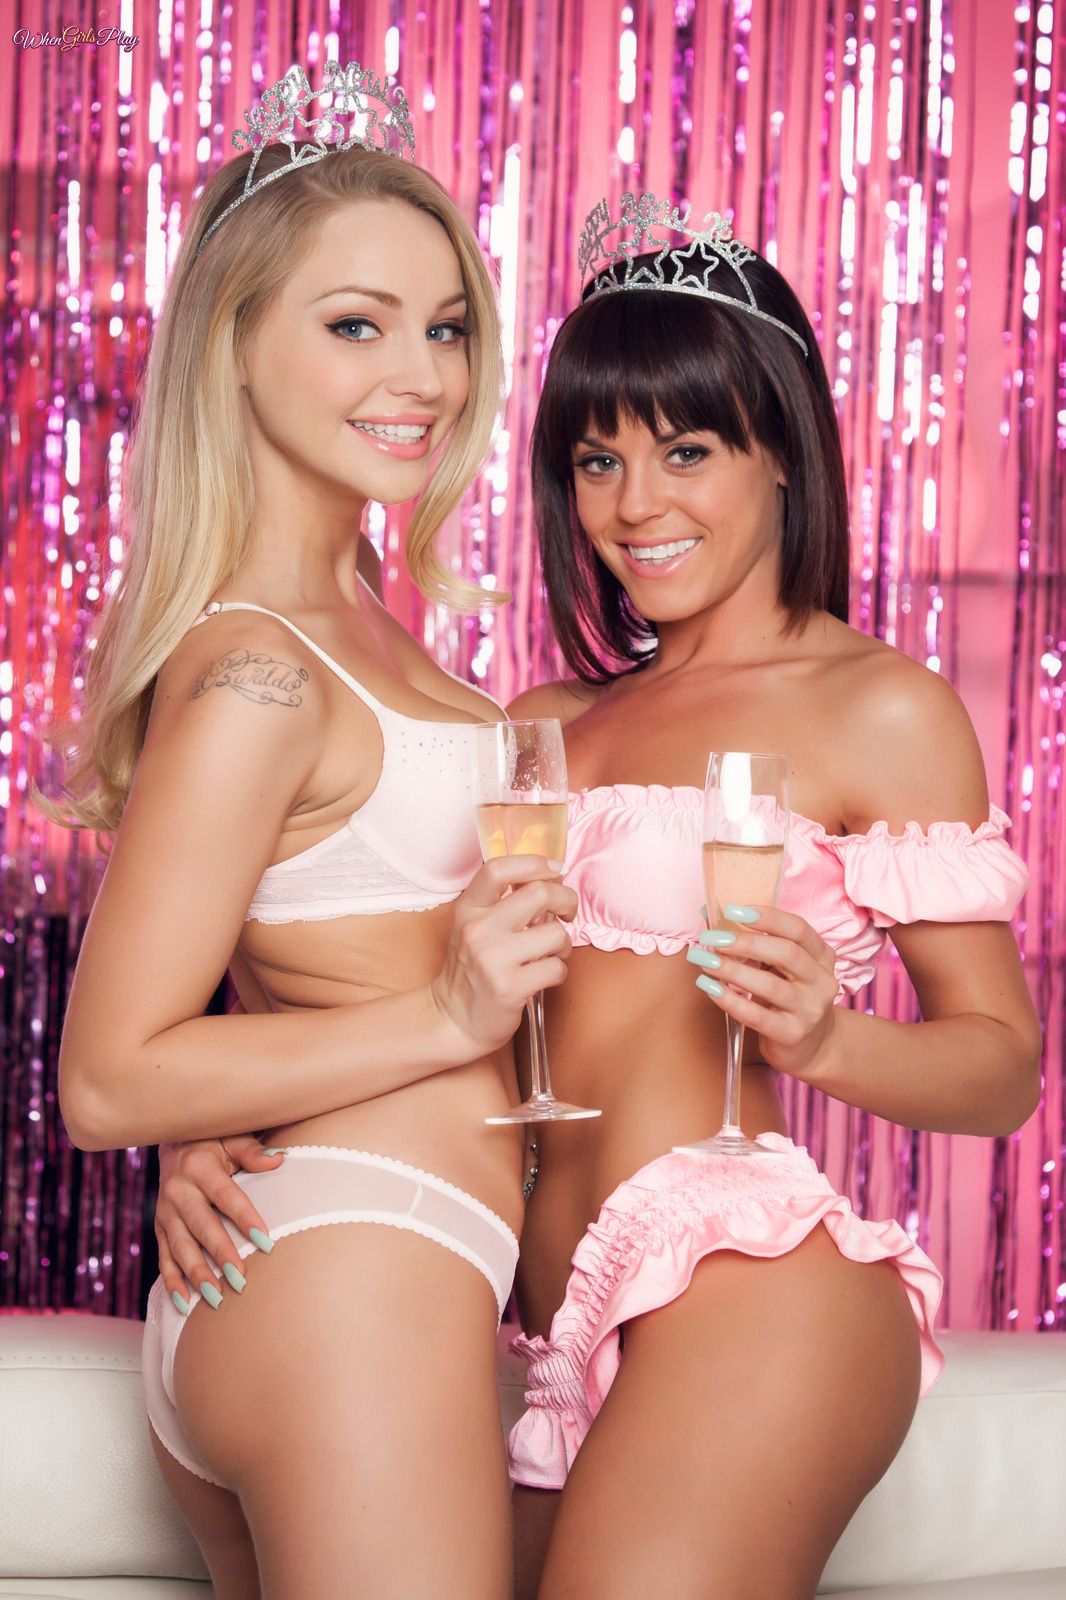 Ringing In The Pink.. featuring Rahyndee James, Staci Carr | Twistys.com